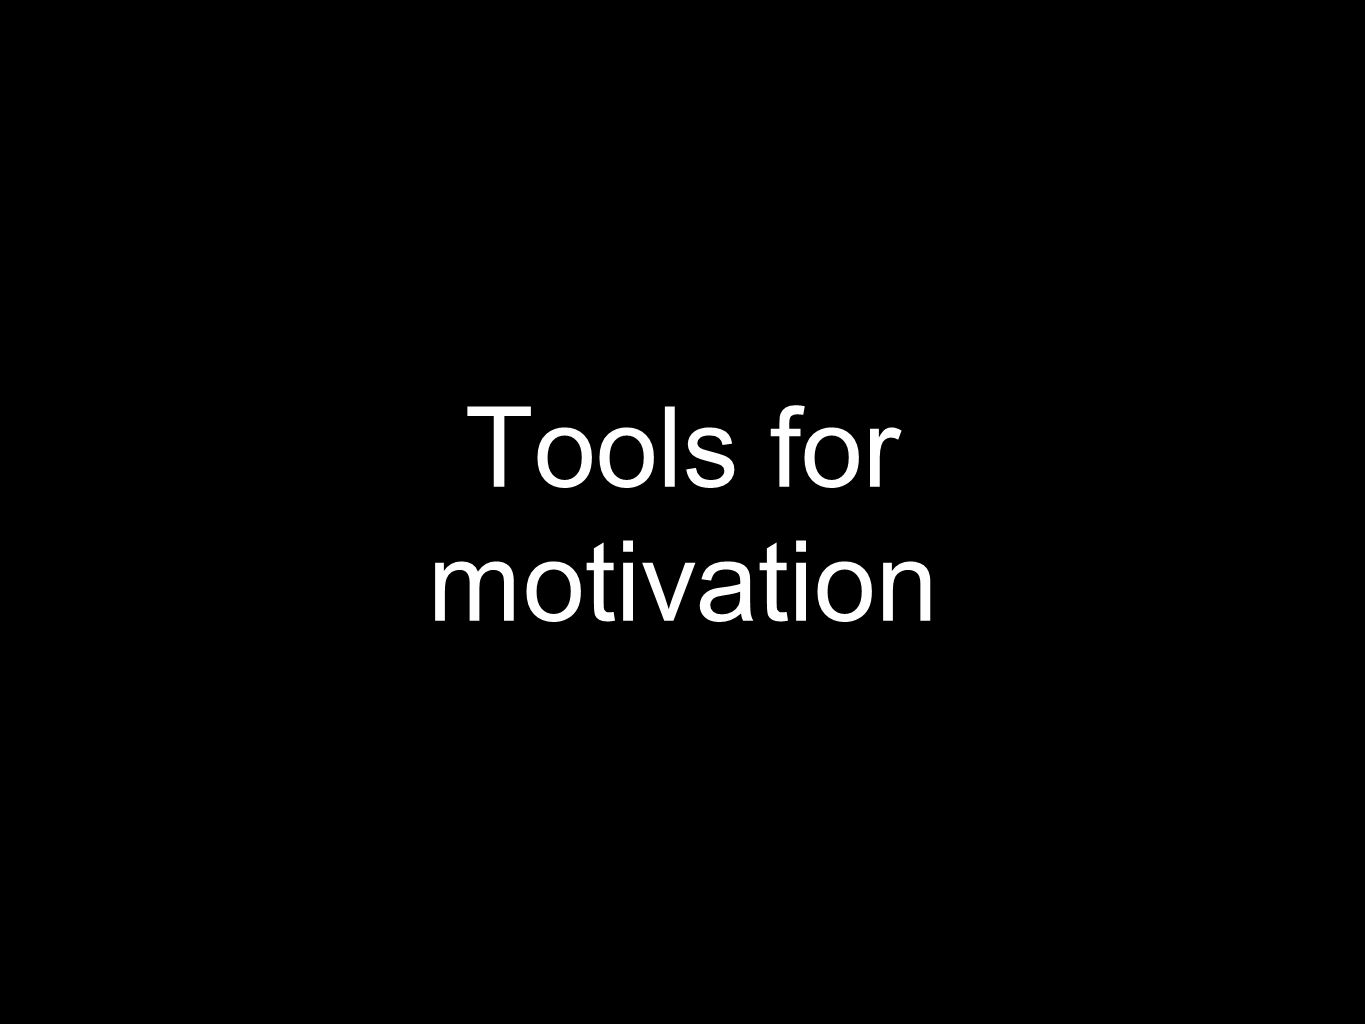 Tools for motivation